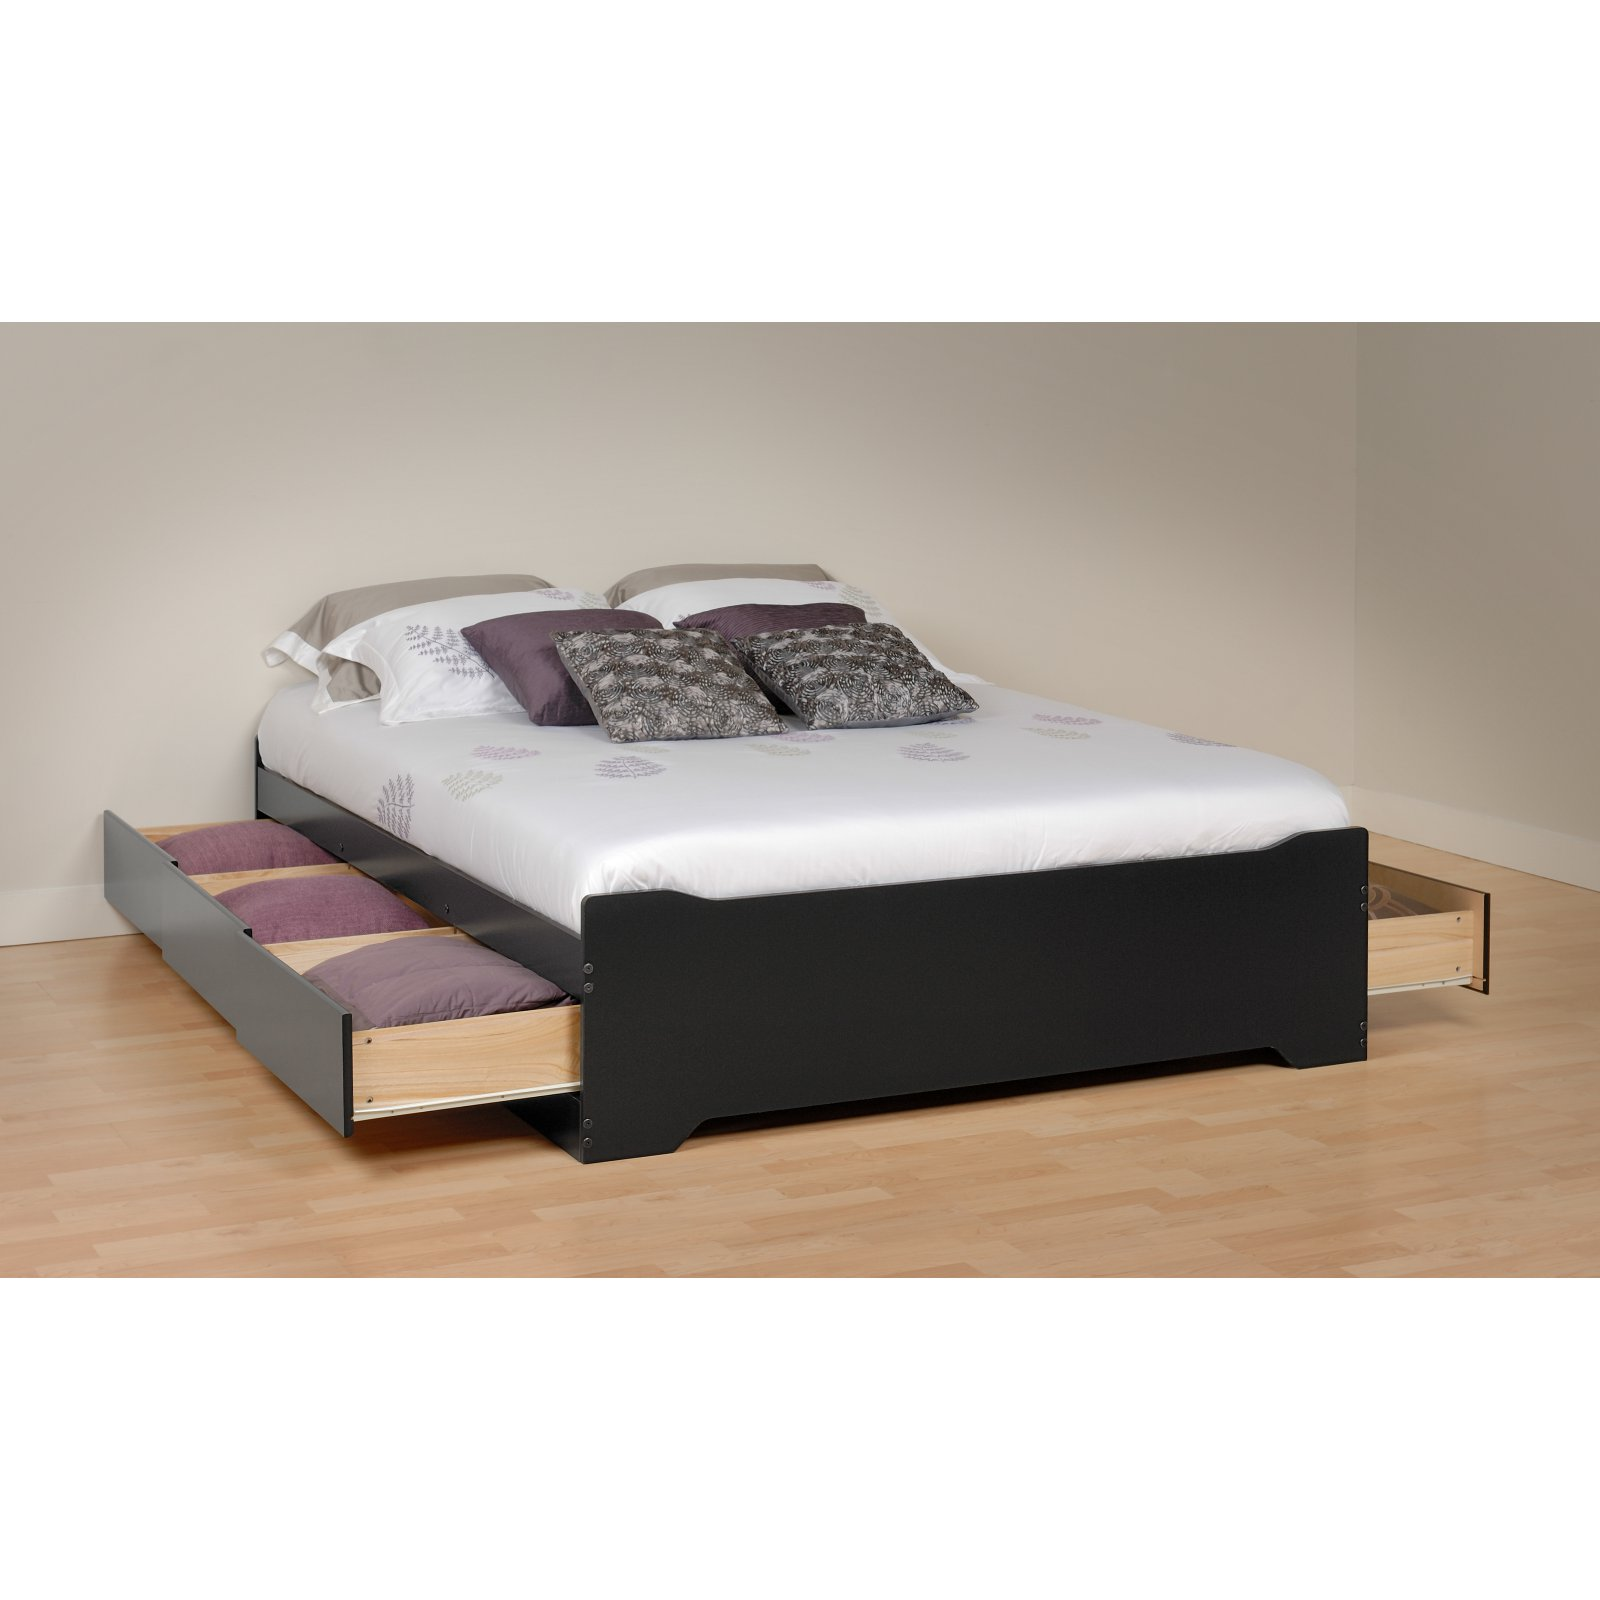 Coal Harbor Queen Mates Platform Storage Bed with 6 Drawers, Black (Box 2 of 3)